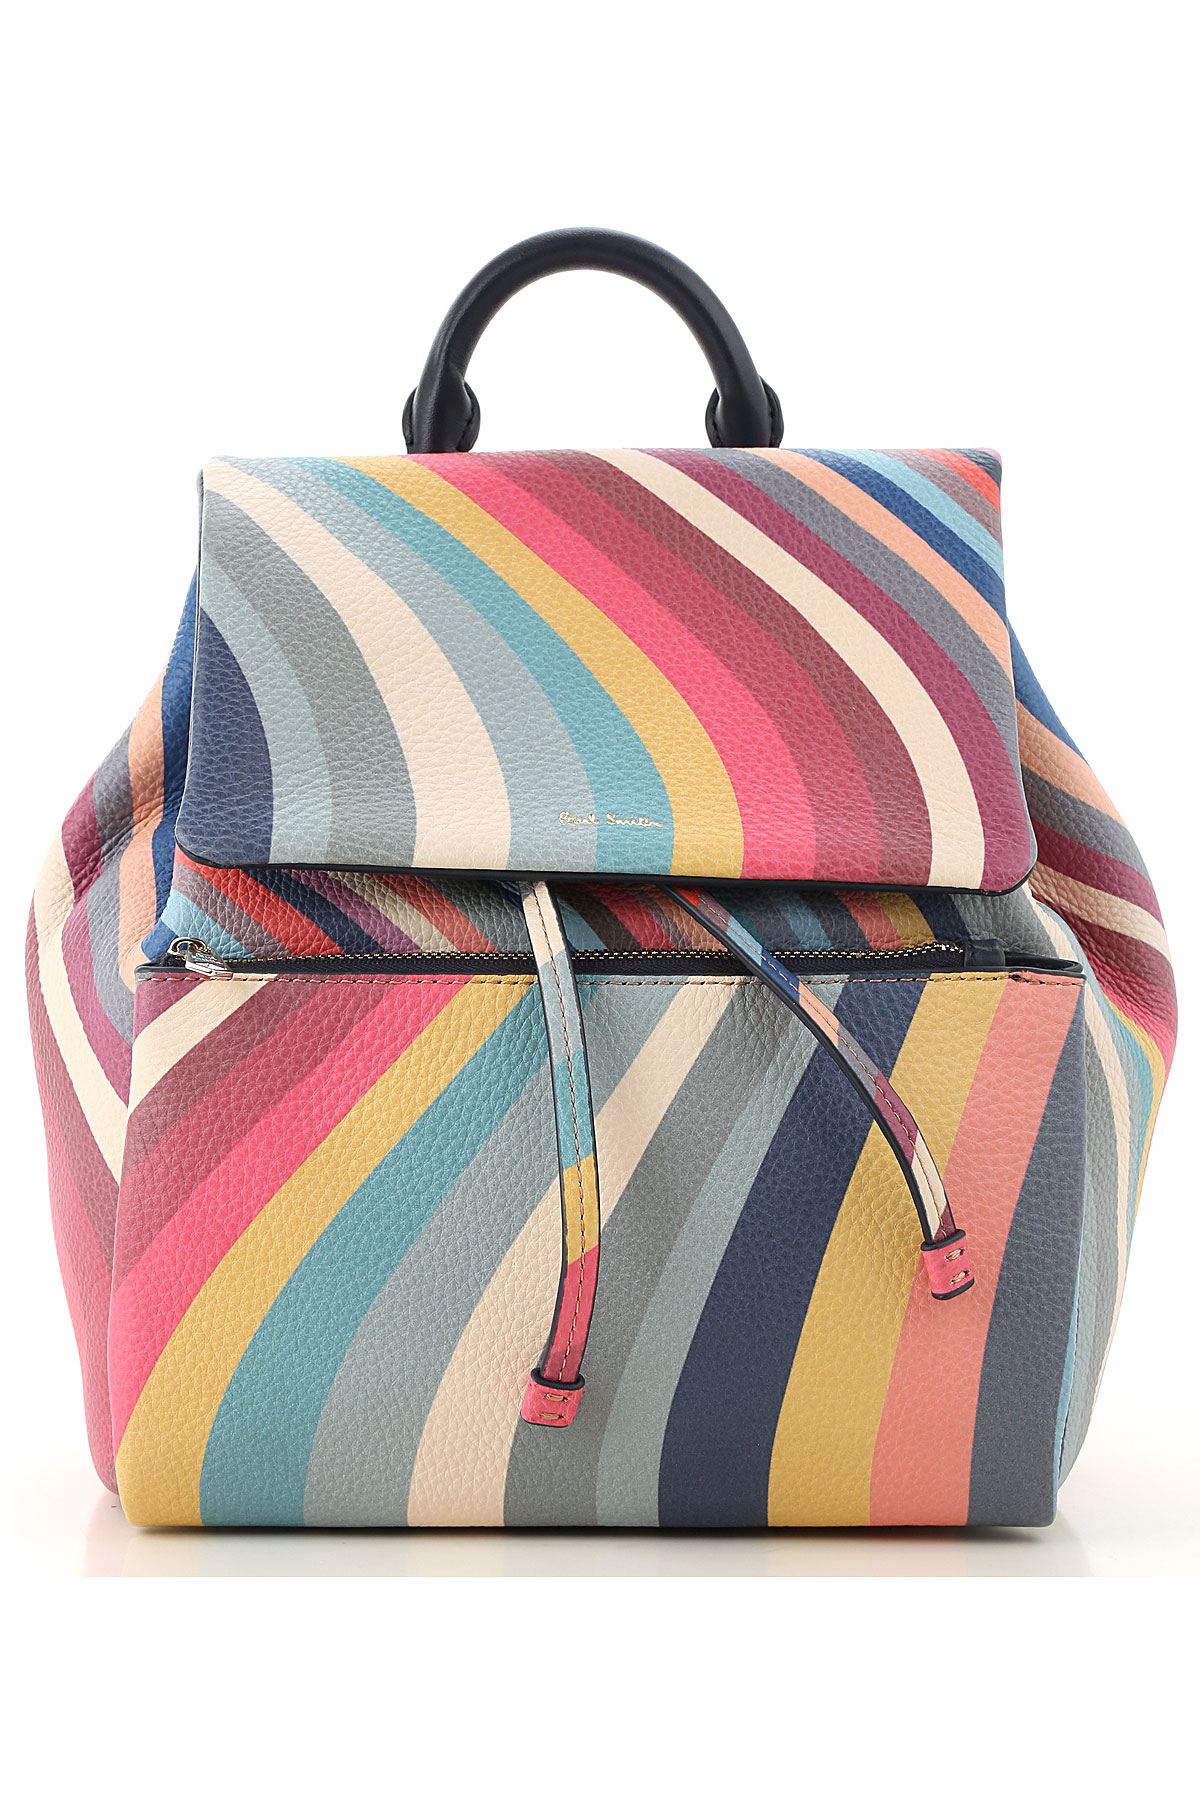 Paul Smith Backpack for Women On Sale, Multicolor, Leather, 2019